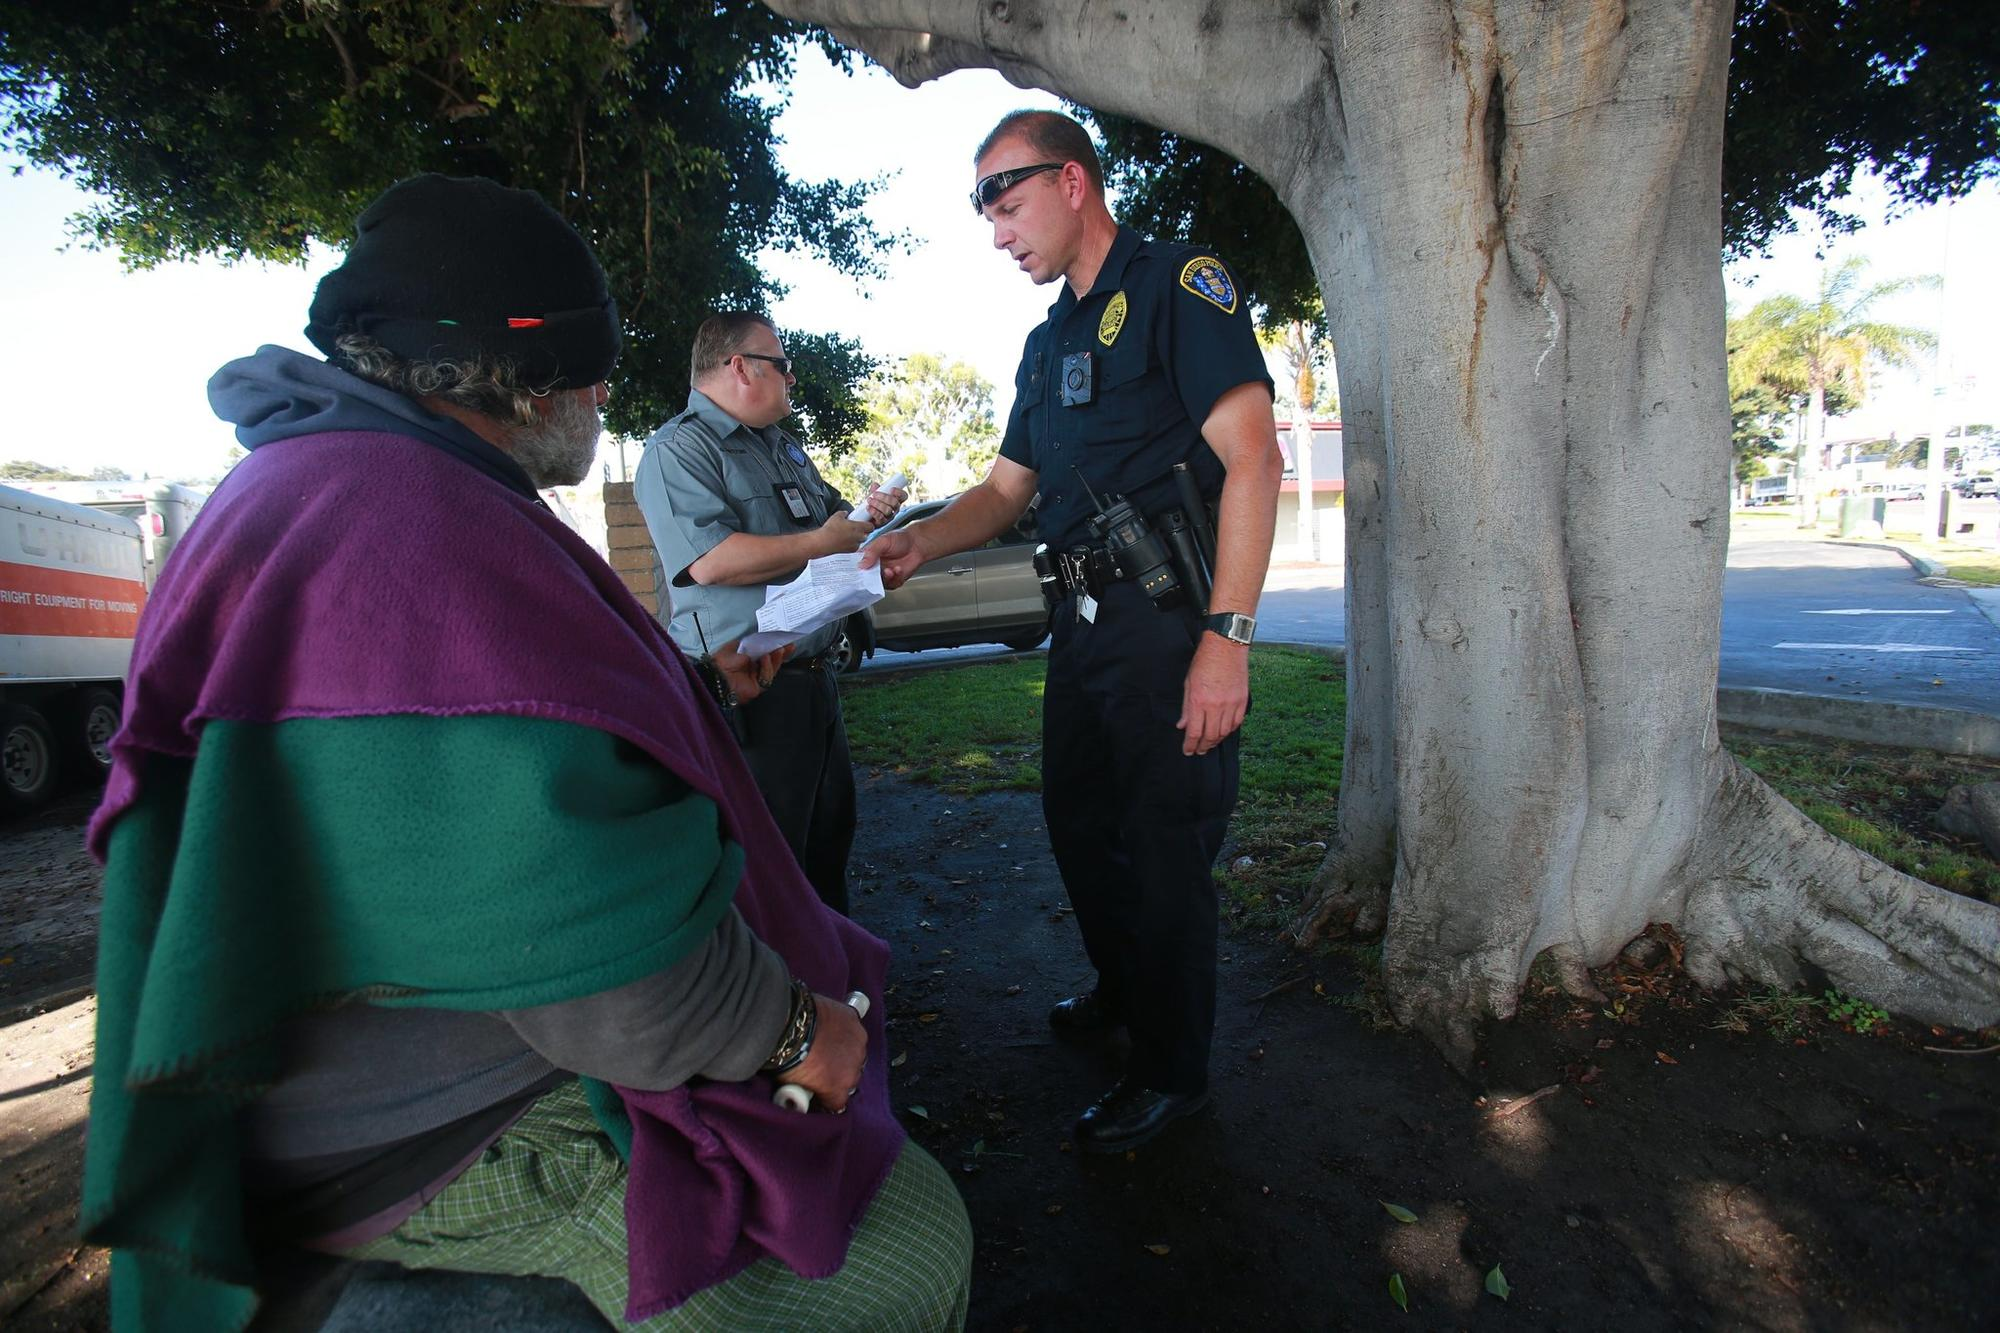 HOT team officer Brian Lucchesi and PERT clinician Greg Whiteford, left, talk with people in the Midway area about the assaults on homeless people.